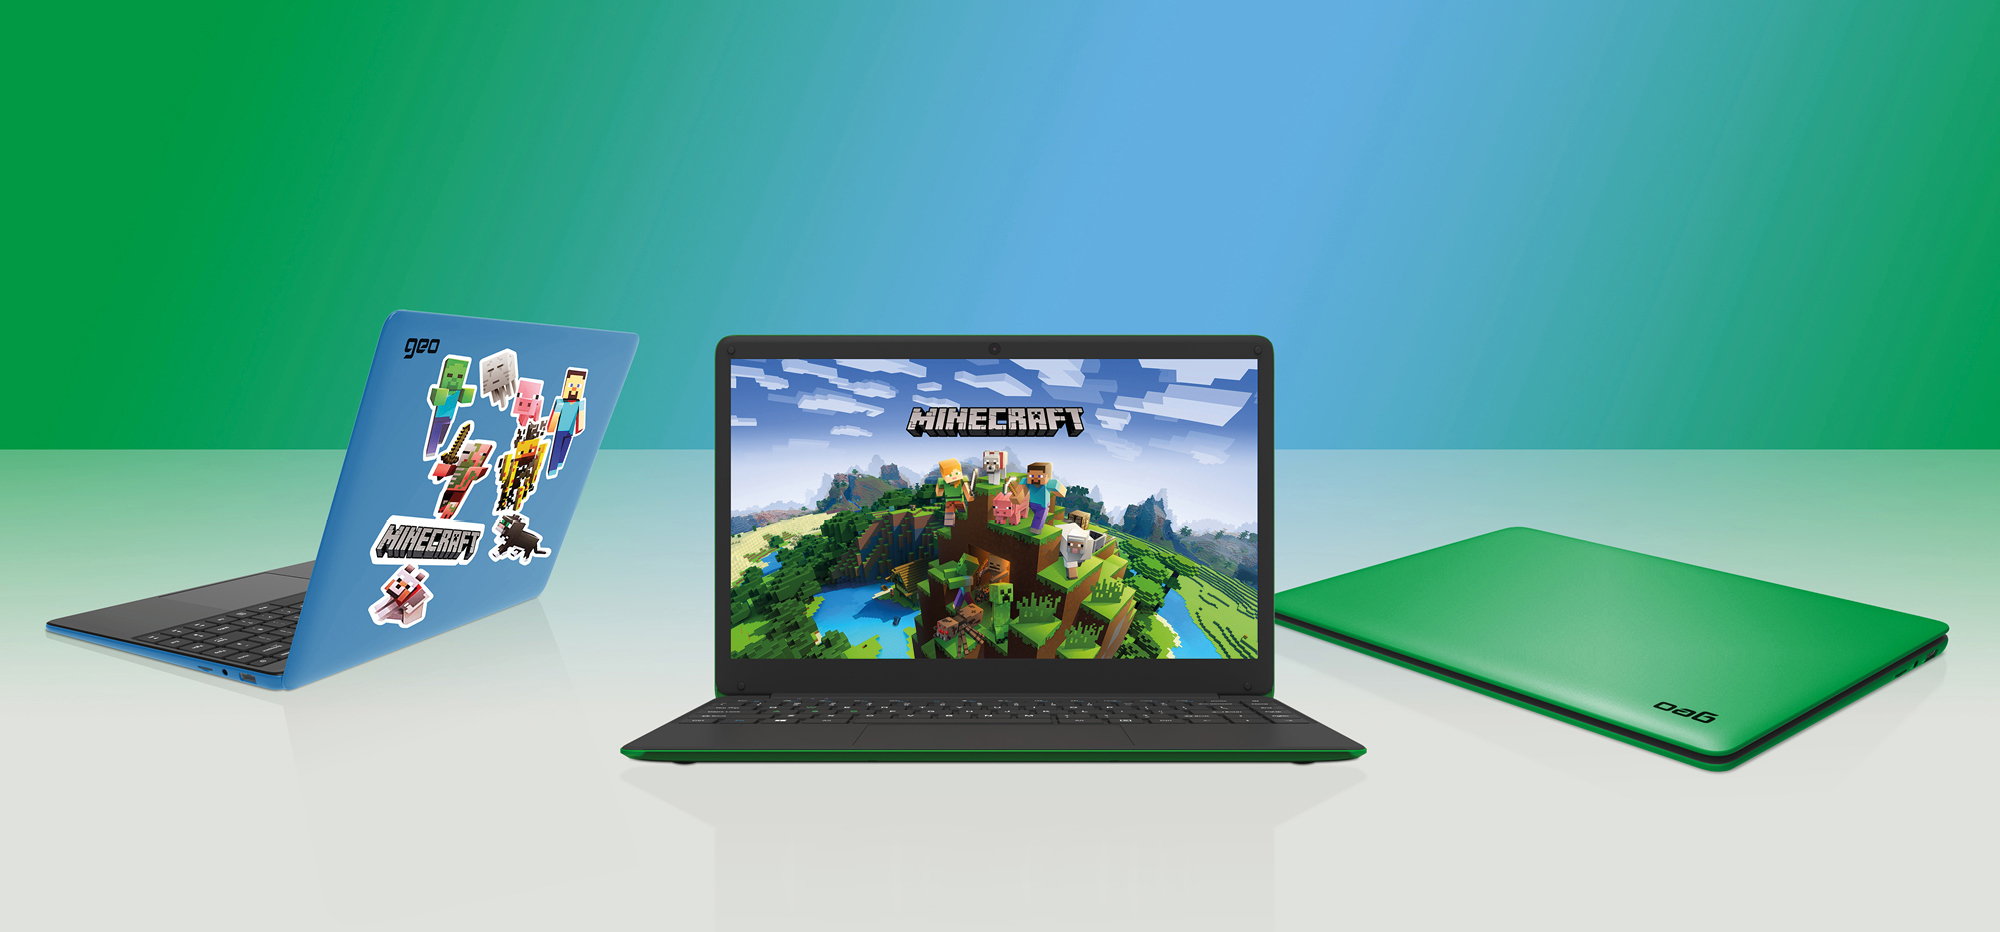 GeoBook Minecraft Edition laptops